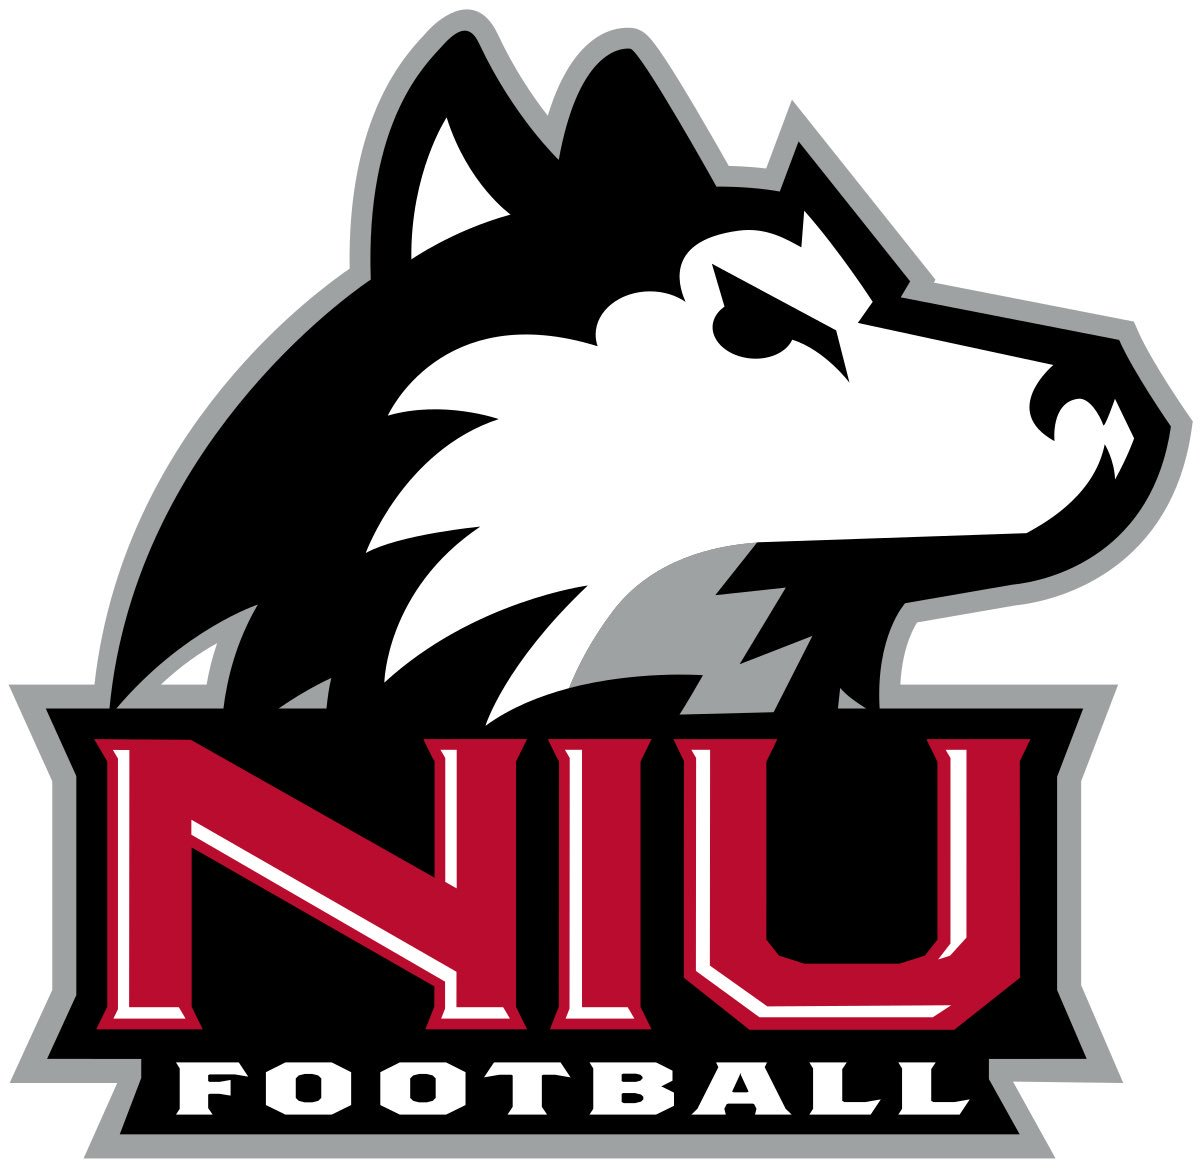 Blessed to announce that I have committed to Northern Illinois University to continue my academic and athletic career!! #TheHardWay #GoHuskies<br>http://pic.twitter.com/qmYV72zBo6